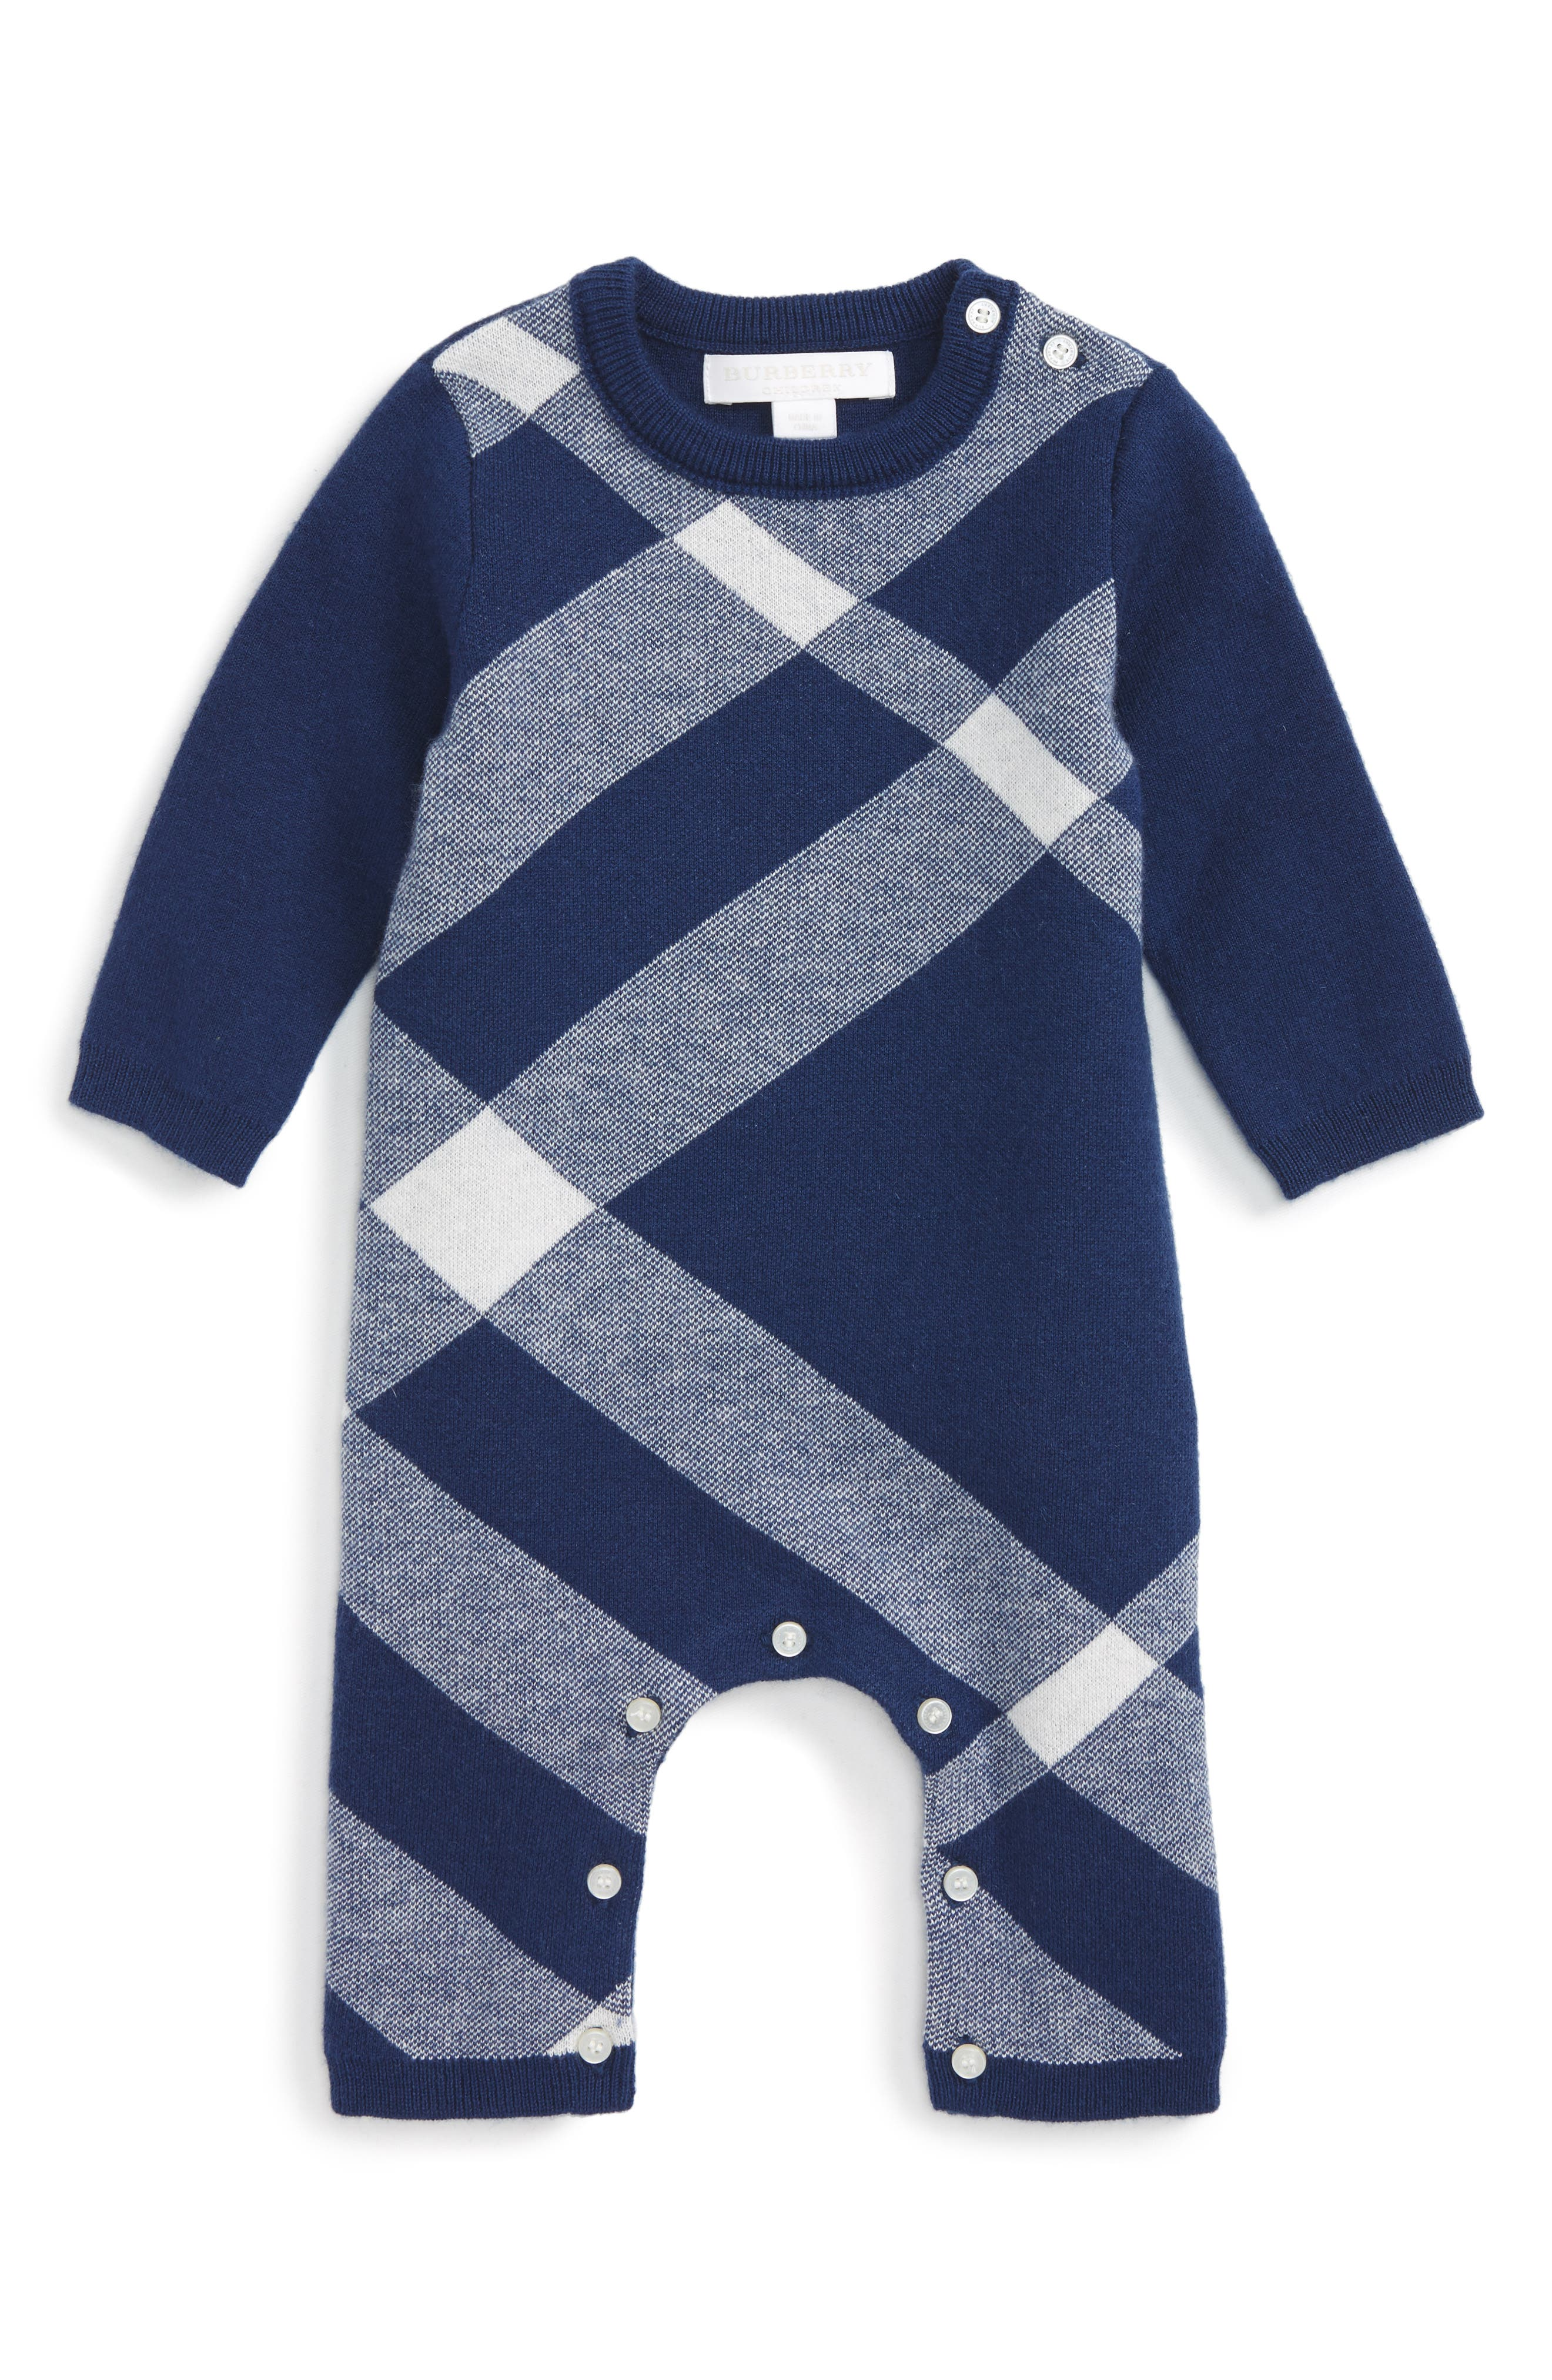 Alternate Image 1 Selected - Burberry Ashley Check Romper (Baby Girls)